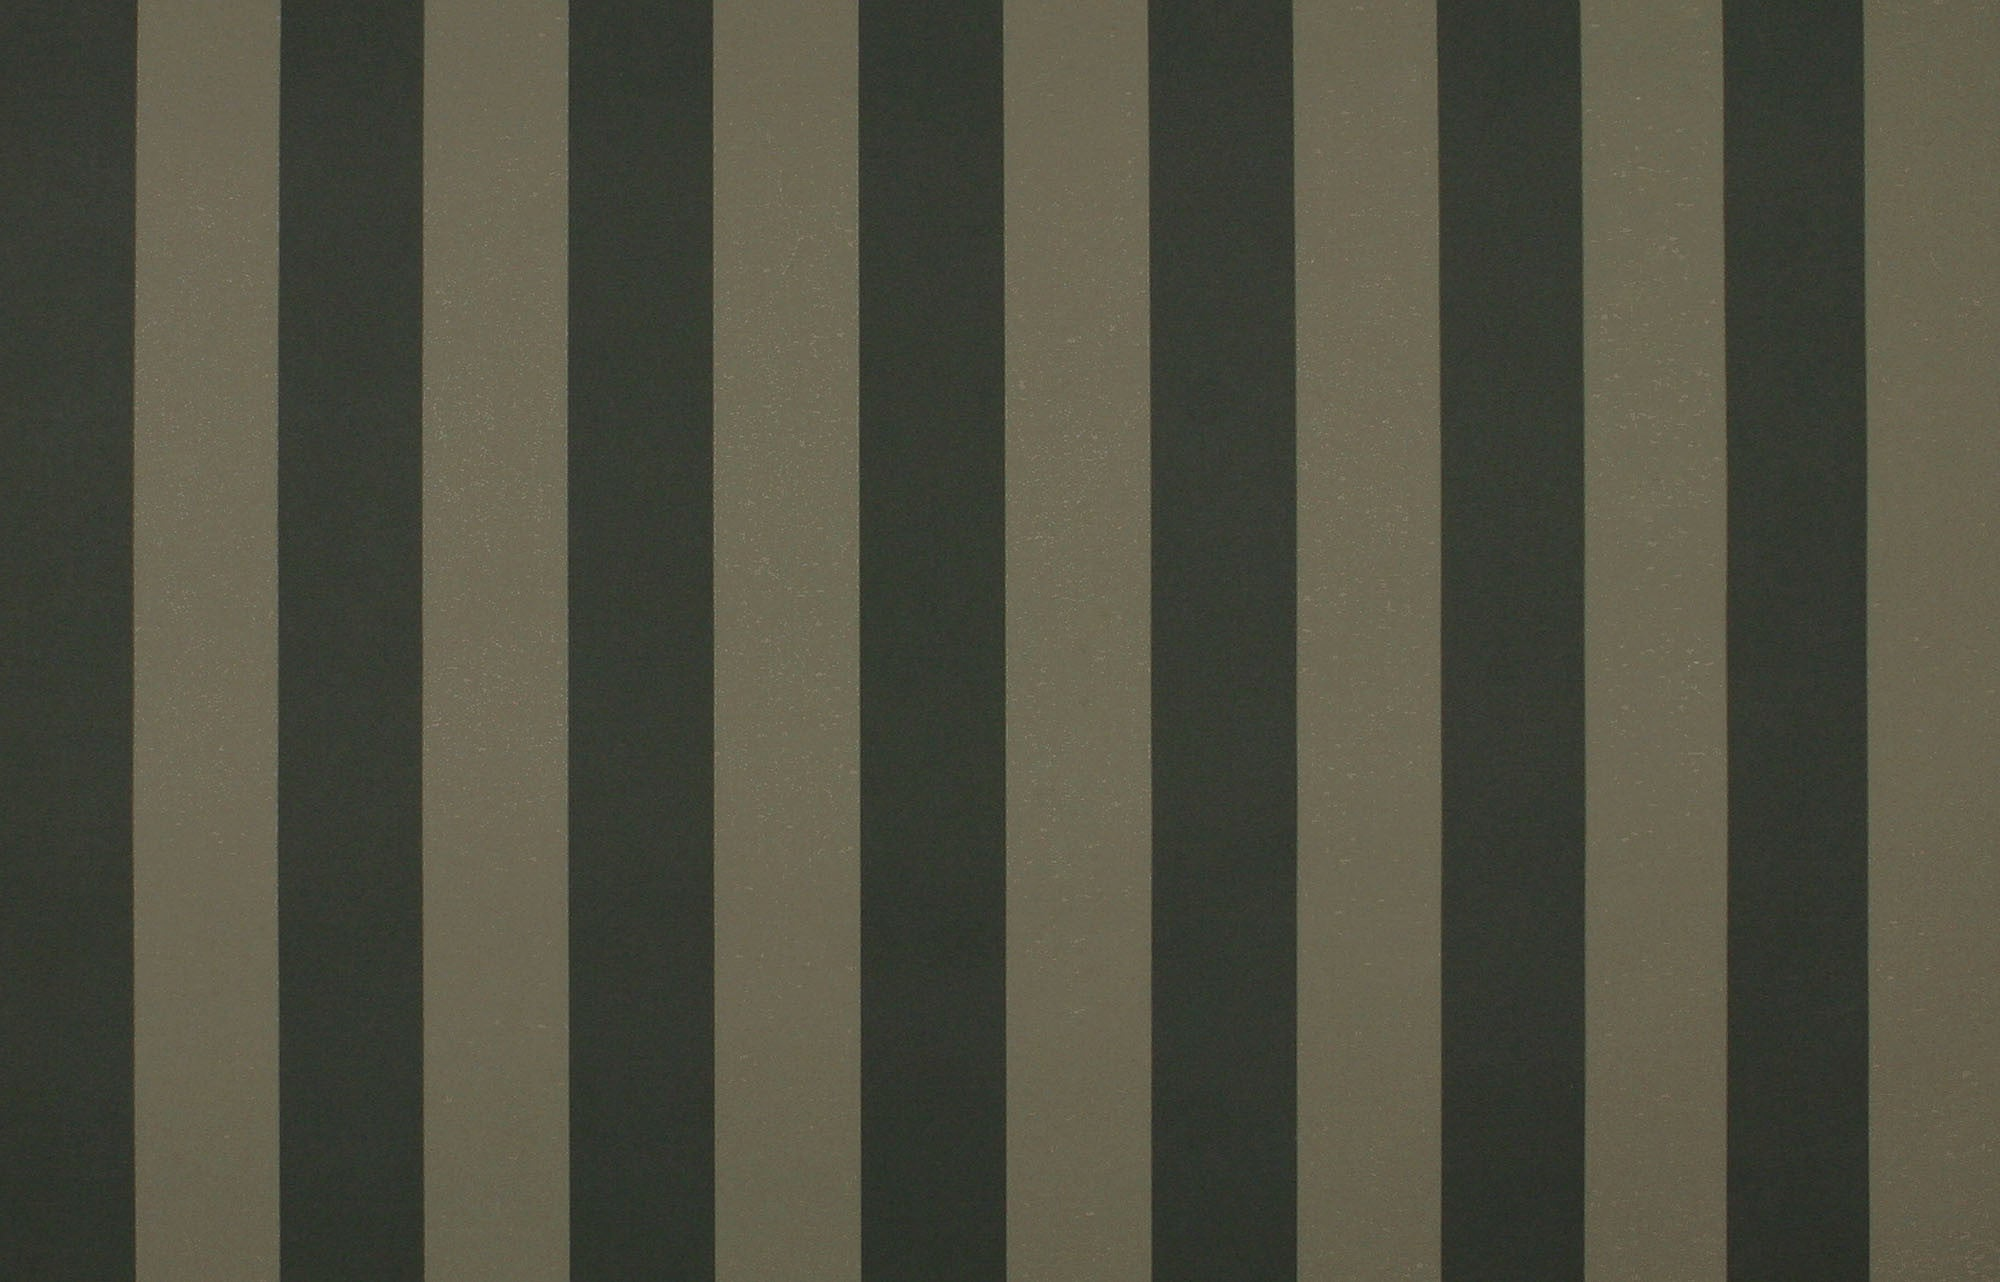 Striped Wallpaper Light Grey Dark Grey Geraldine Rae